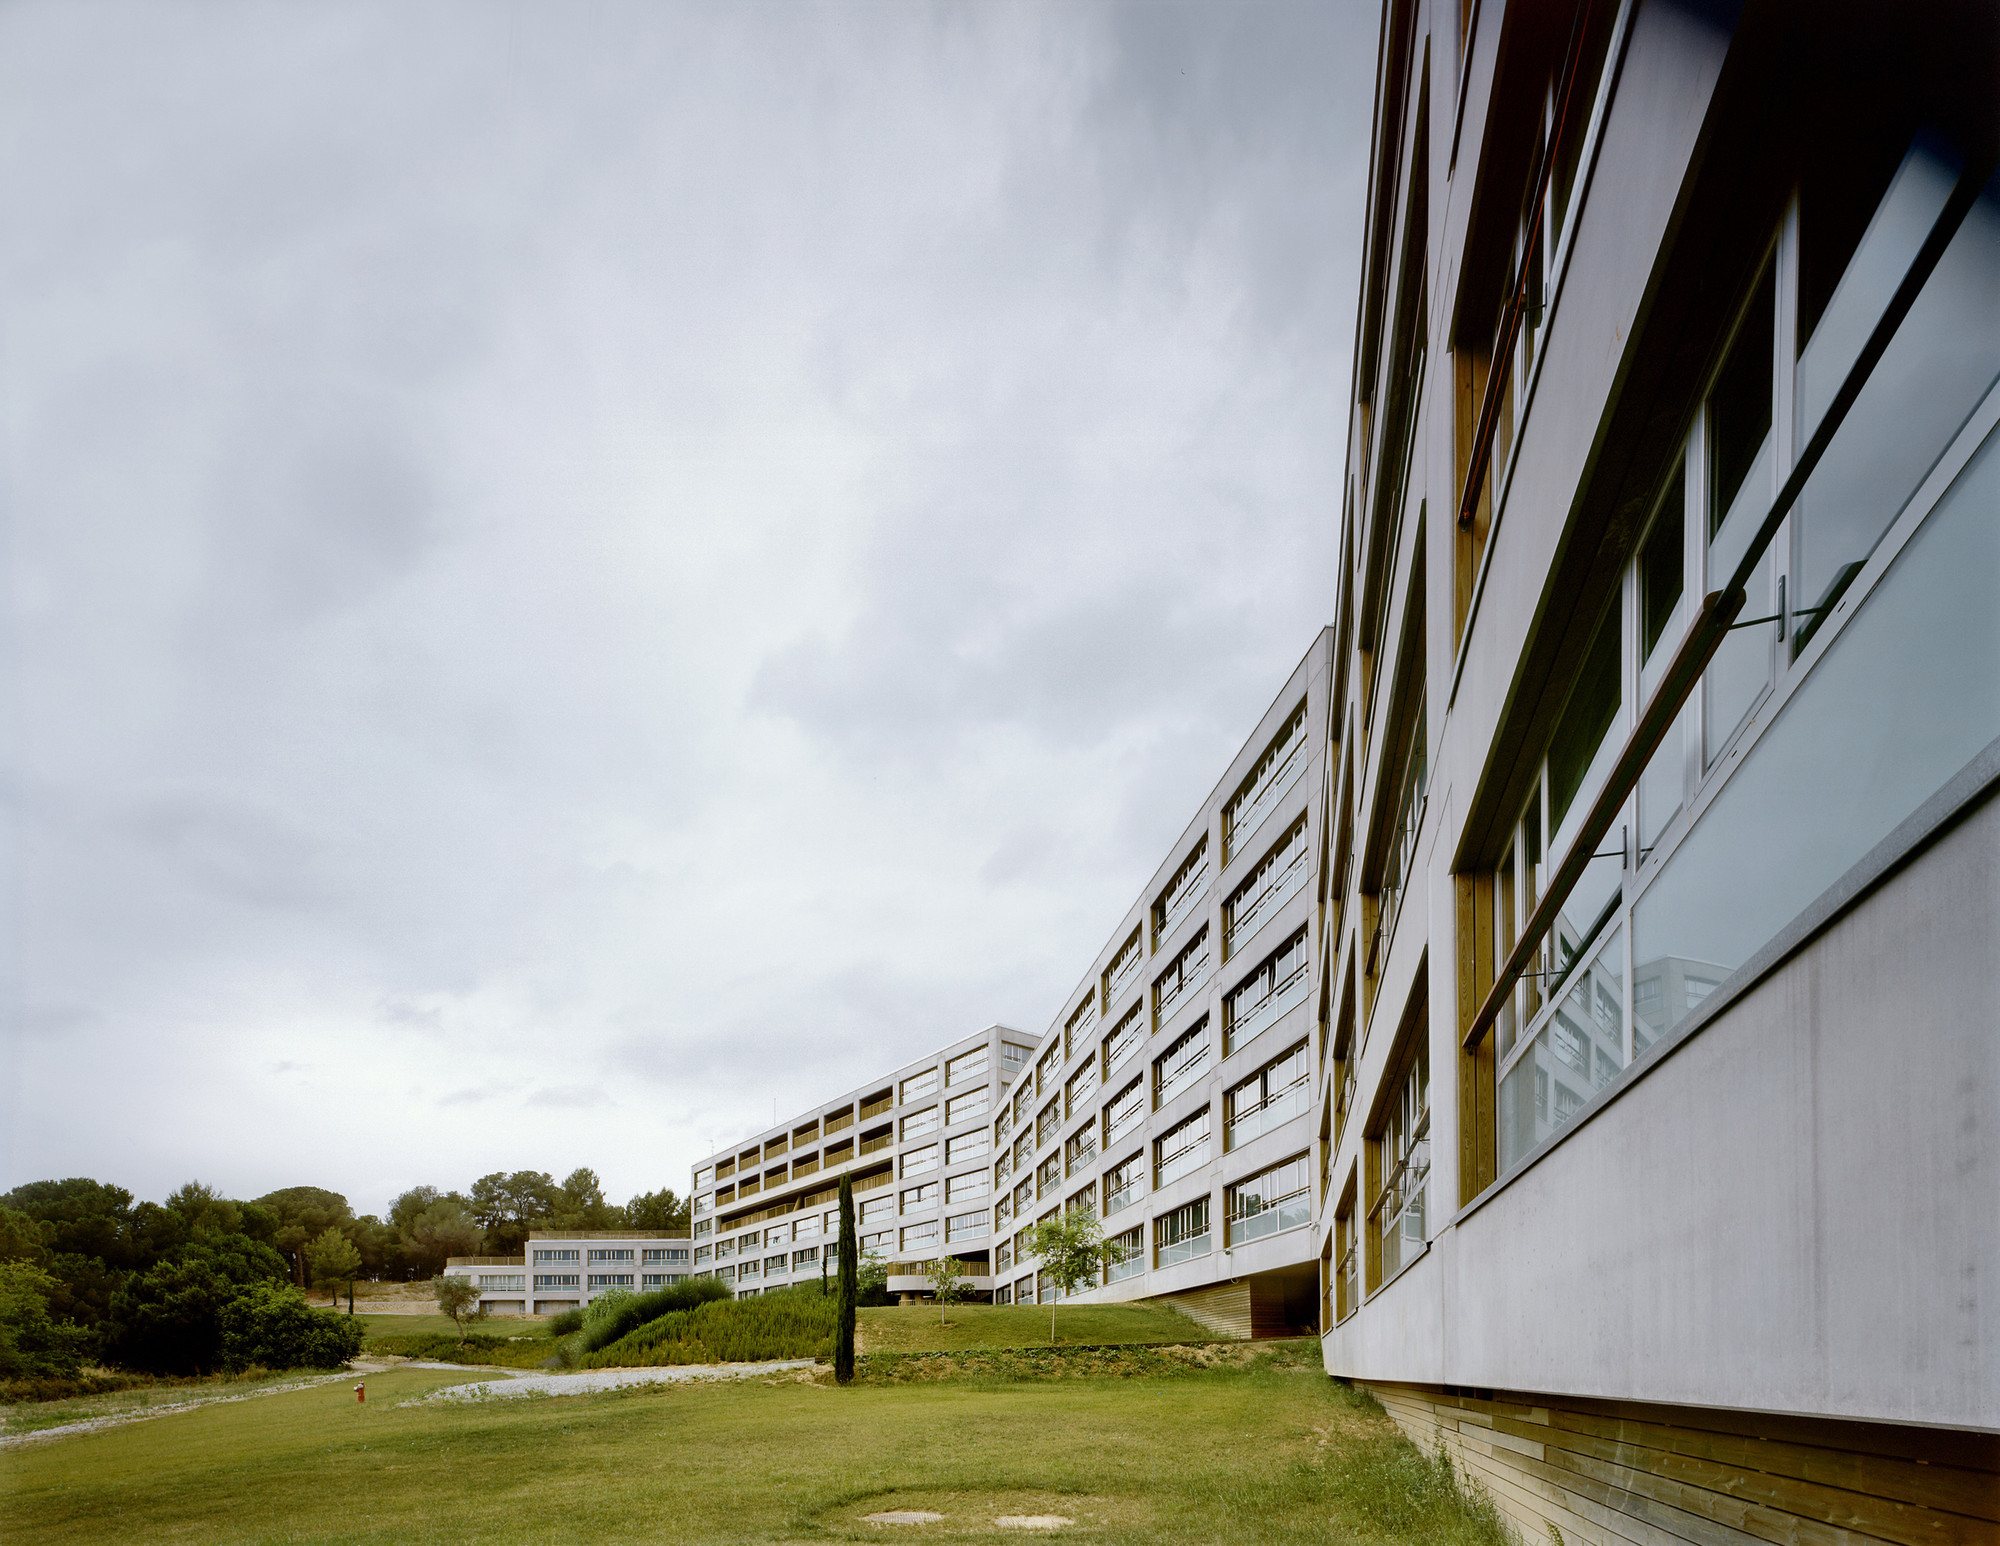 216 Social Dwellings for students and professors in Cerdanyola del Vallés / Bru Lacomba Setoain, © J. Bernadó